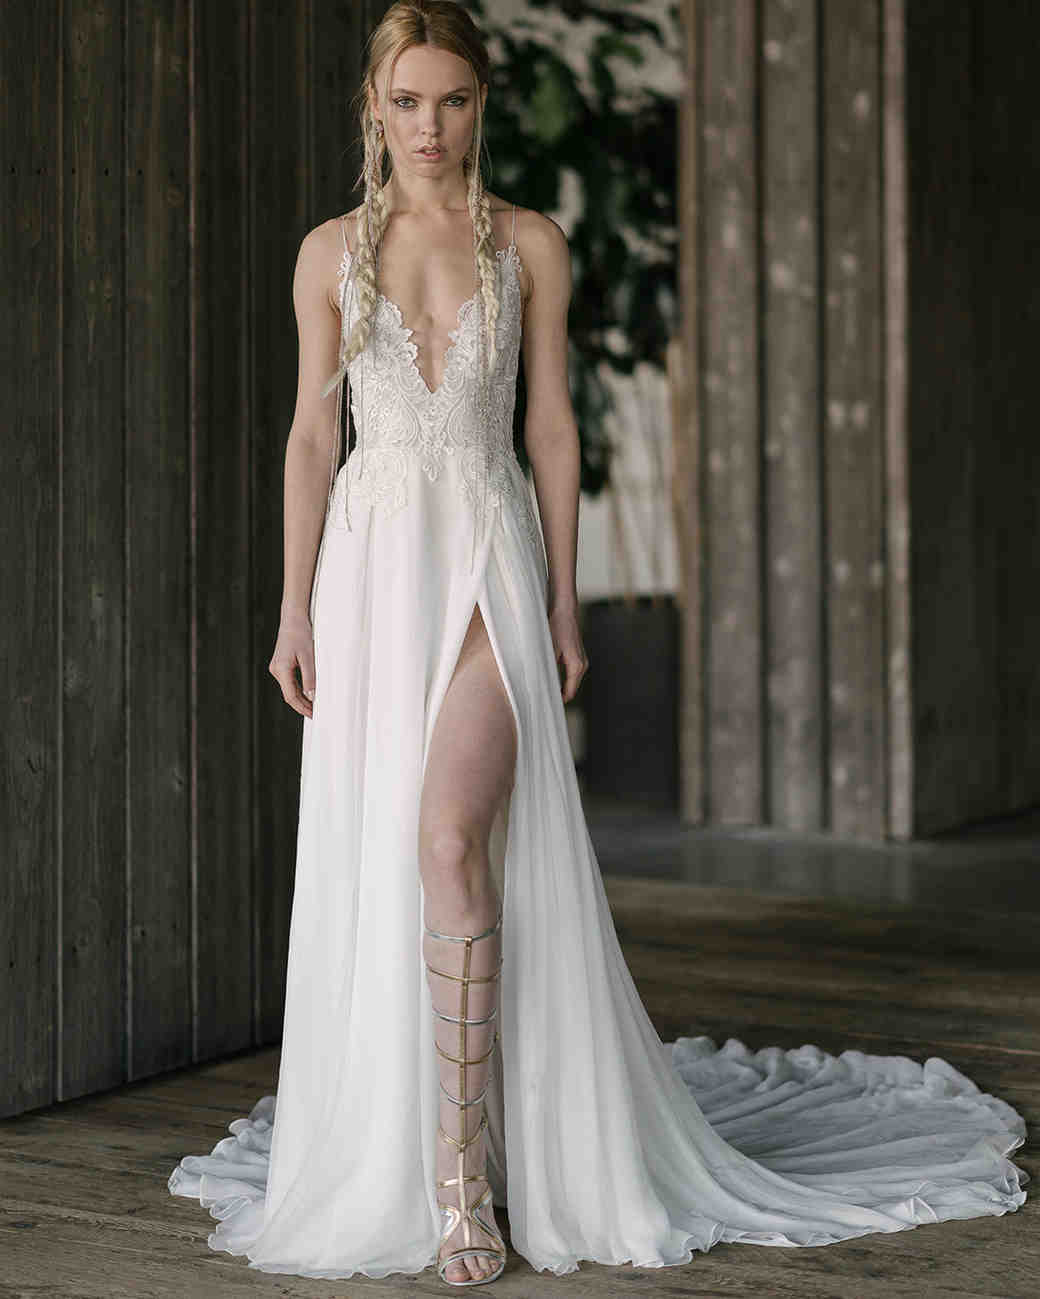 rivini by rita vinieris spring 2019 a-line wedding dress deep v-neckline and high slit